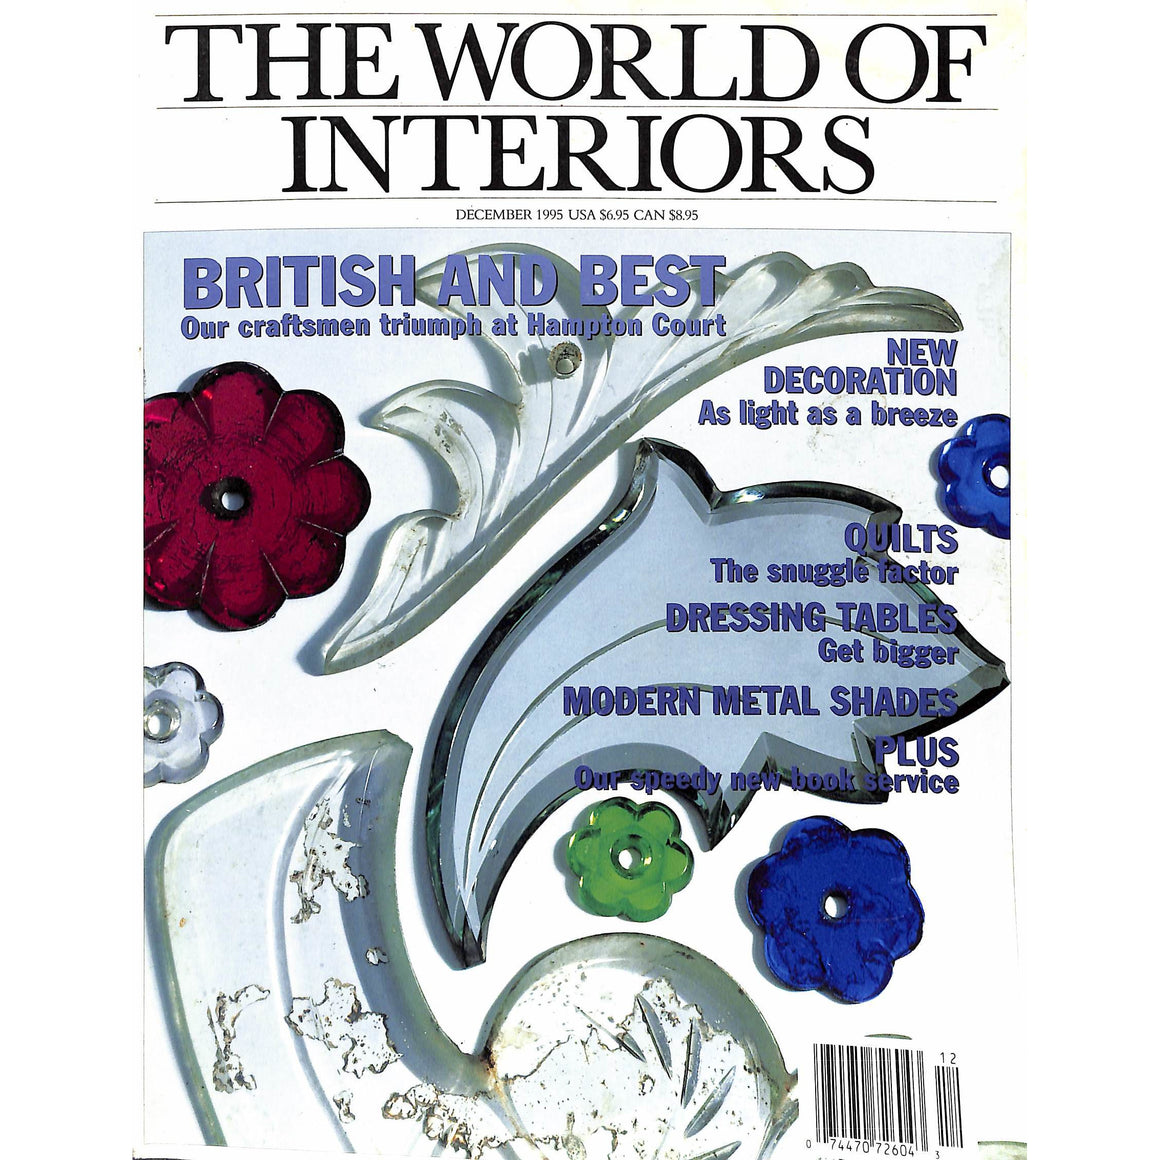 'The World of Interiors December 1995'